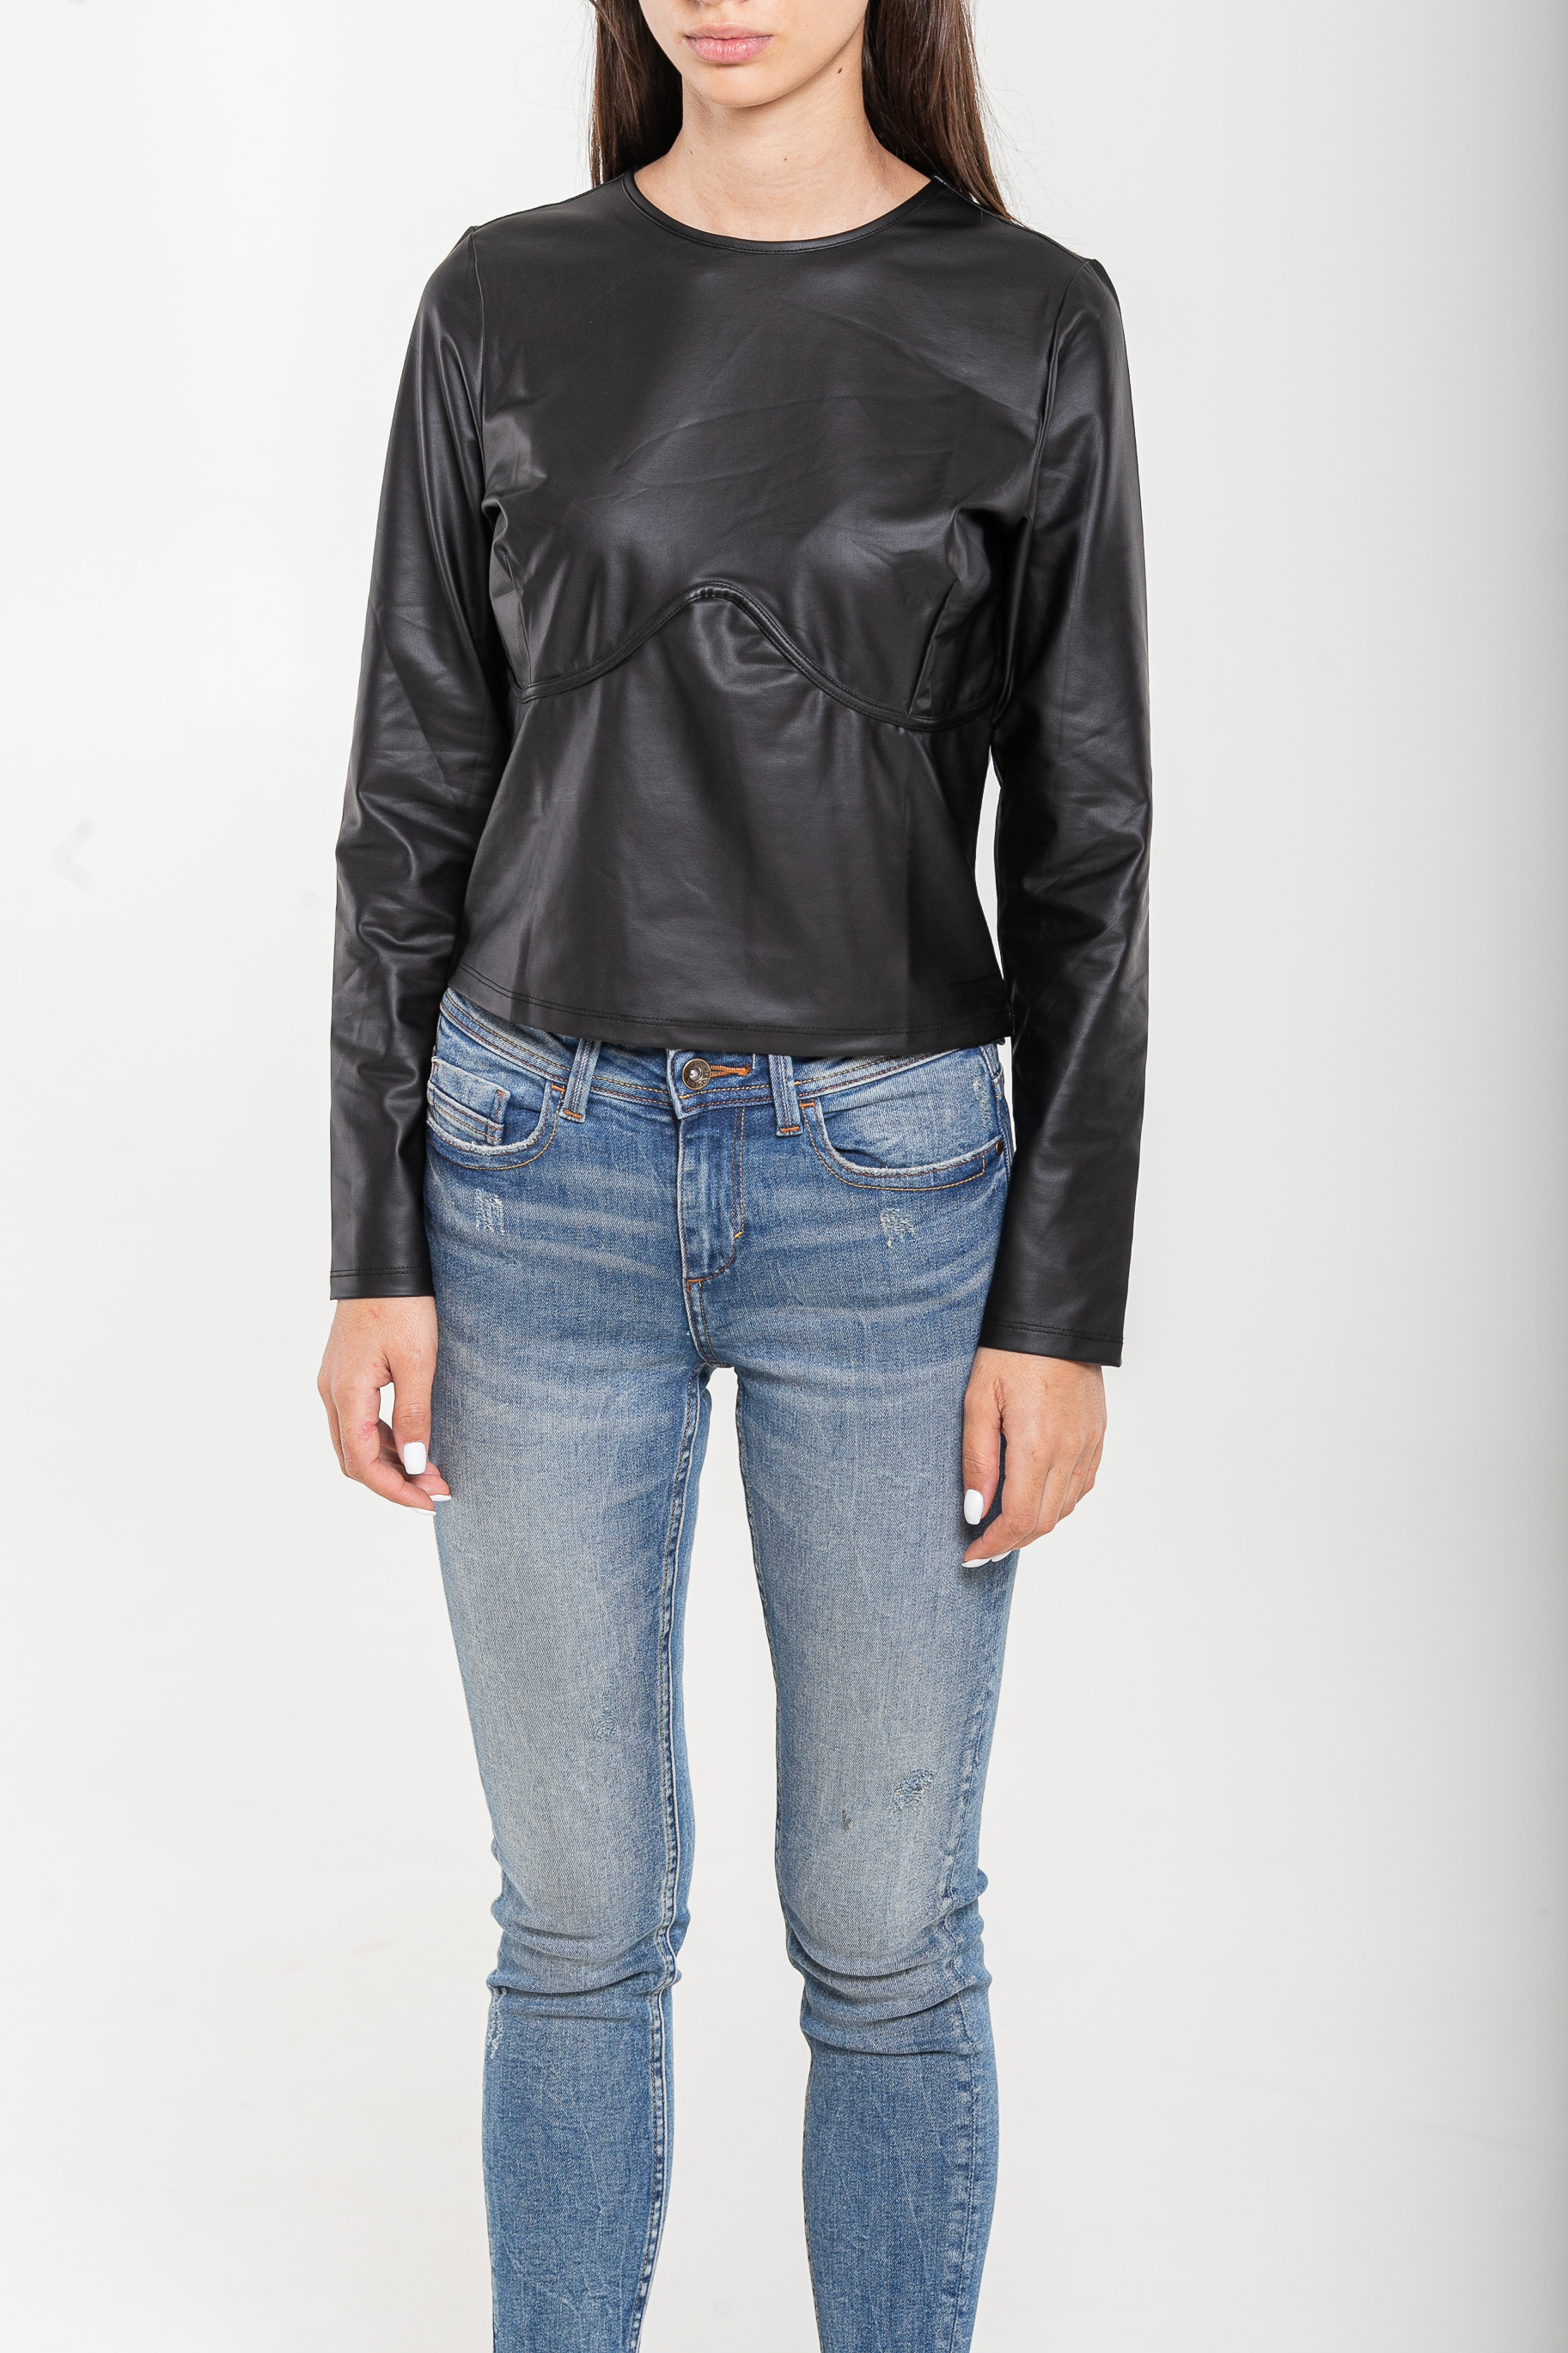 Bluza ONLY Casual (2766) photo